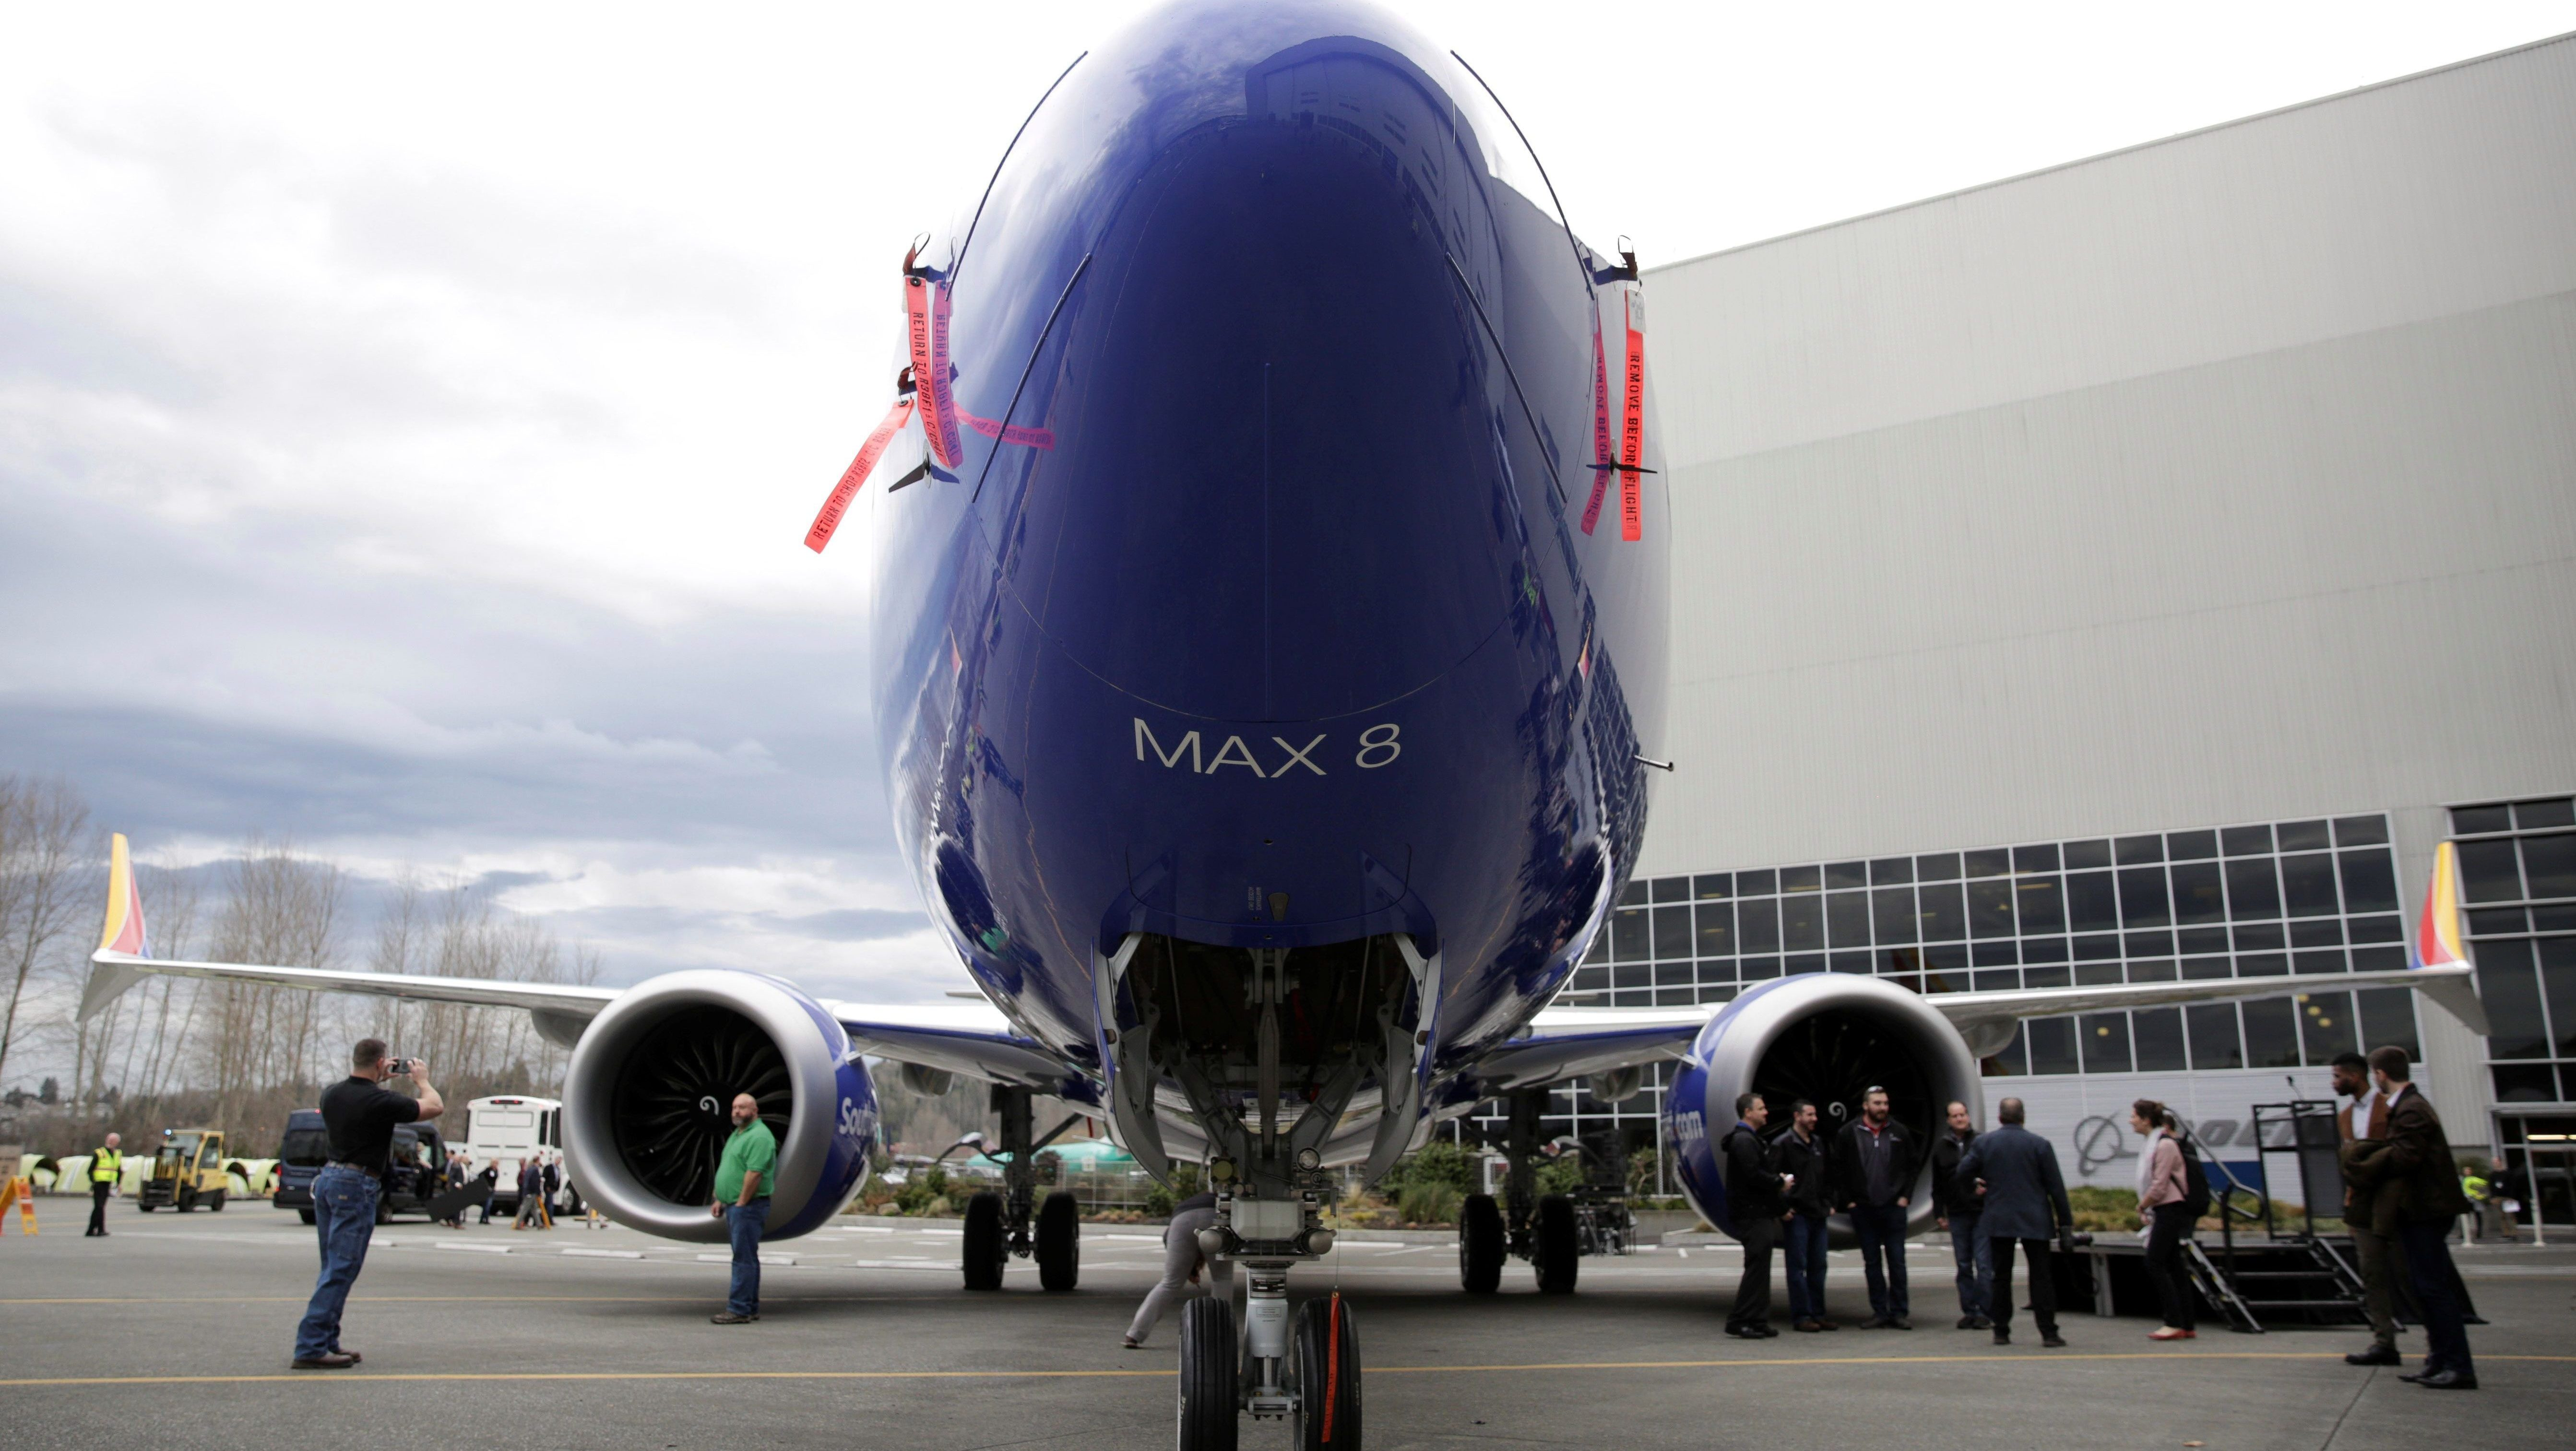 Pilots weren't informed of risks of Boeing 737 Max's new